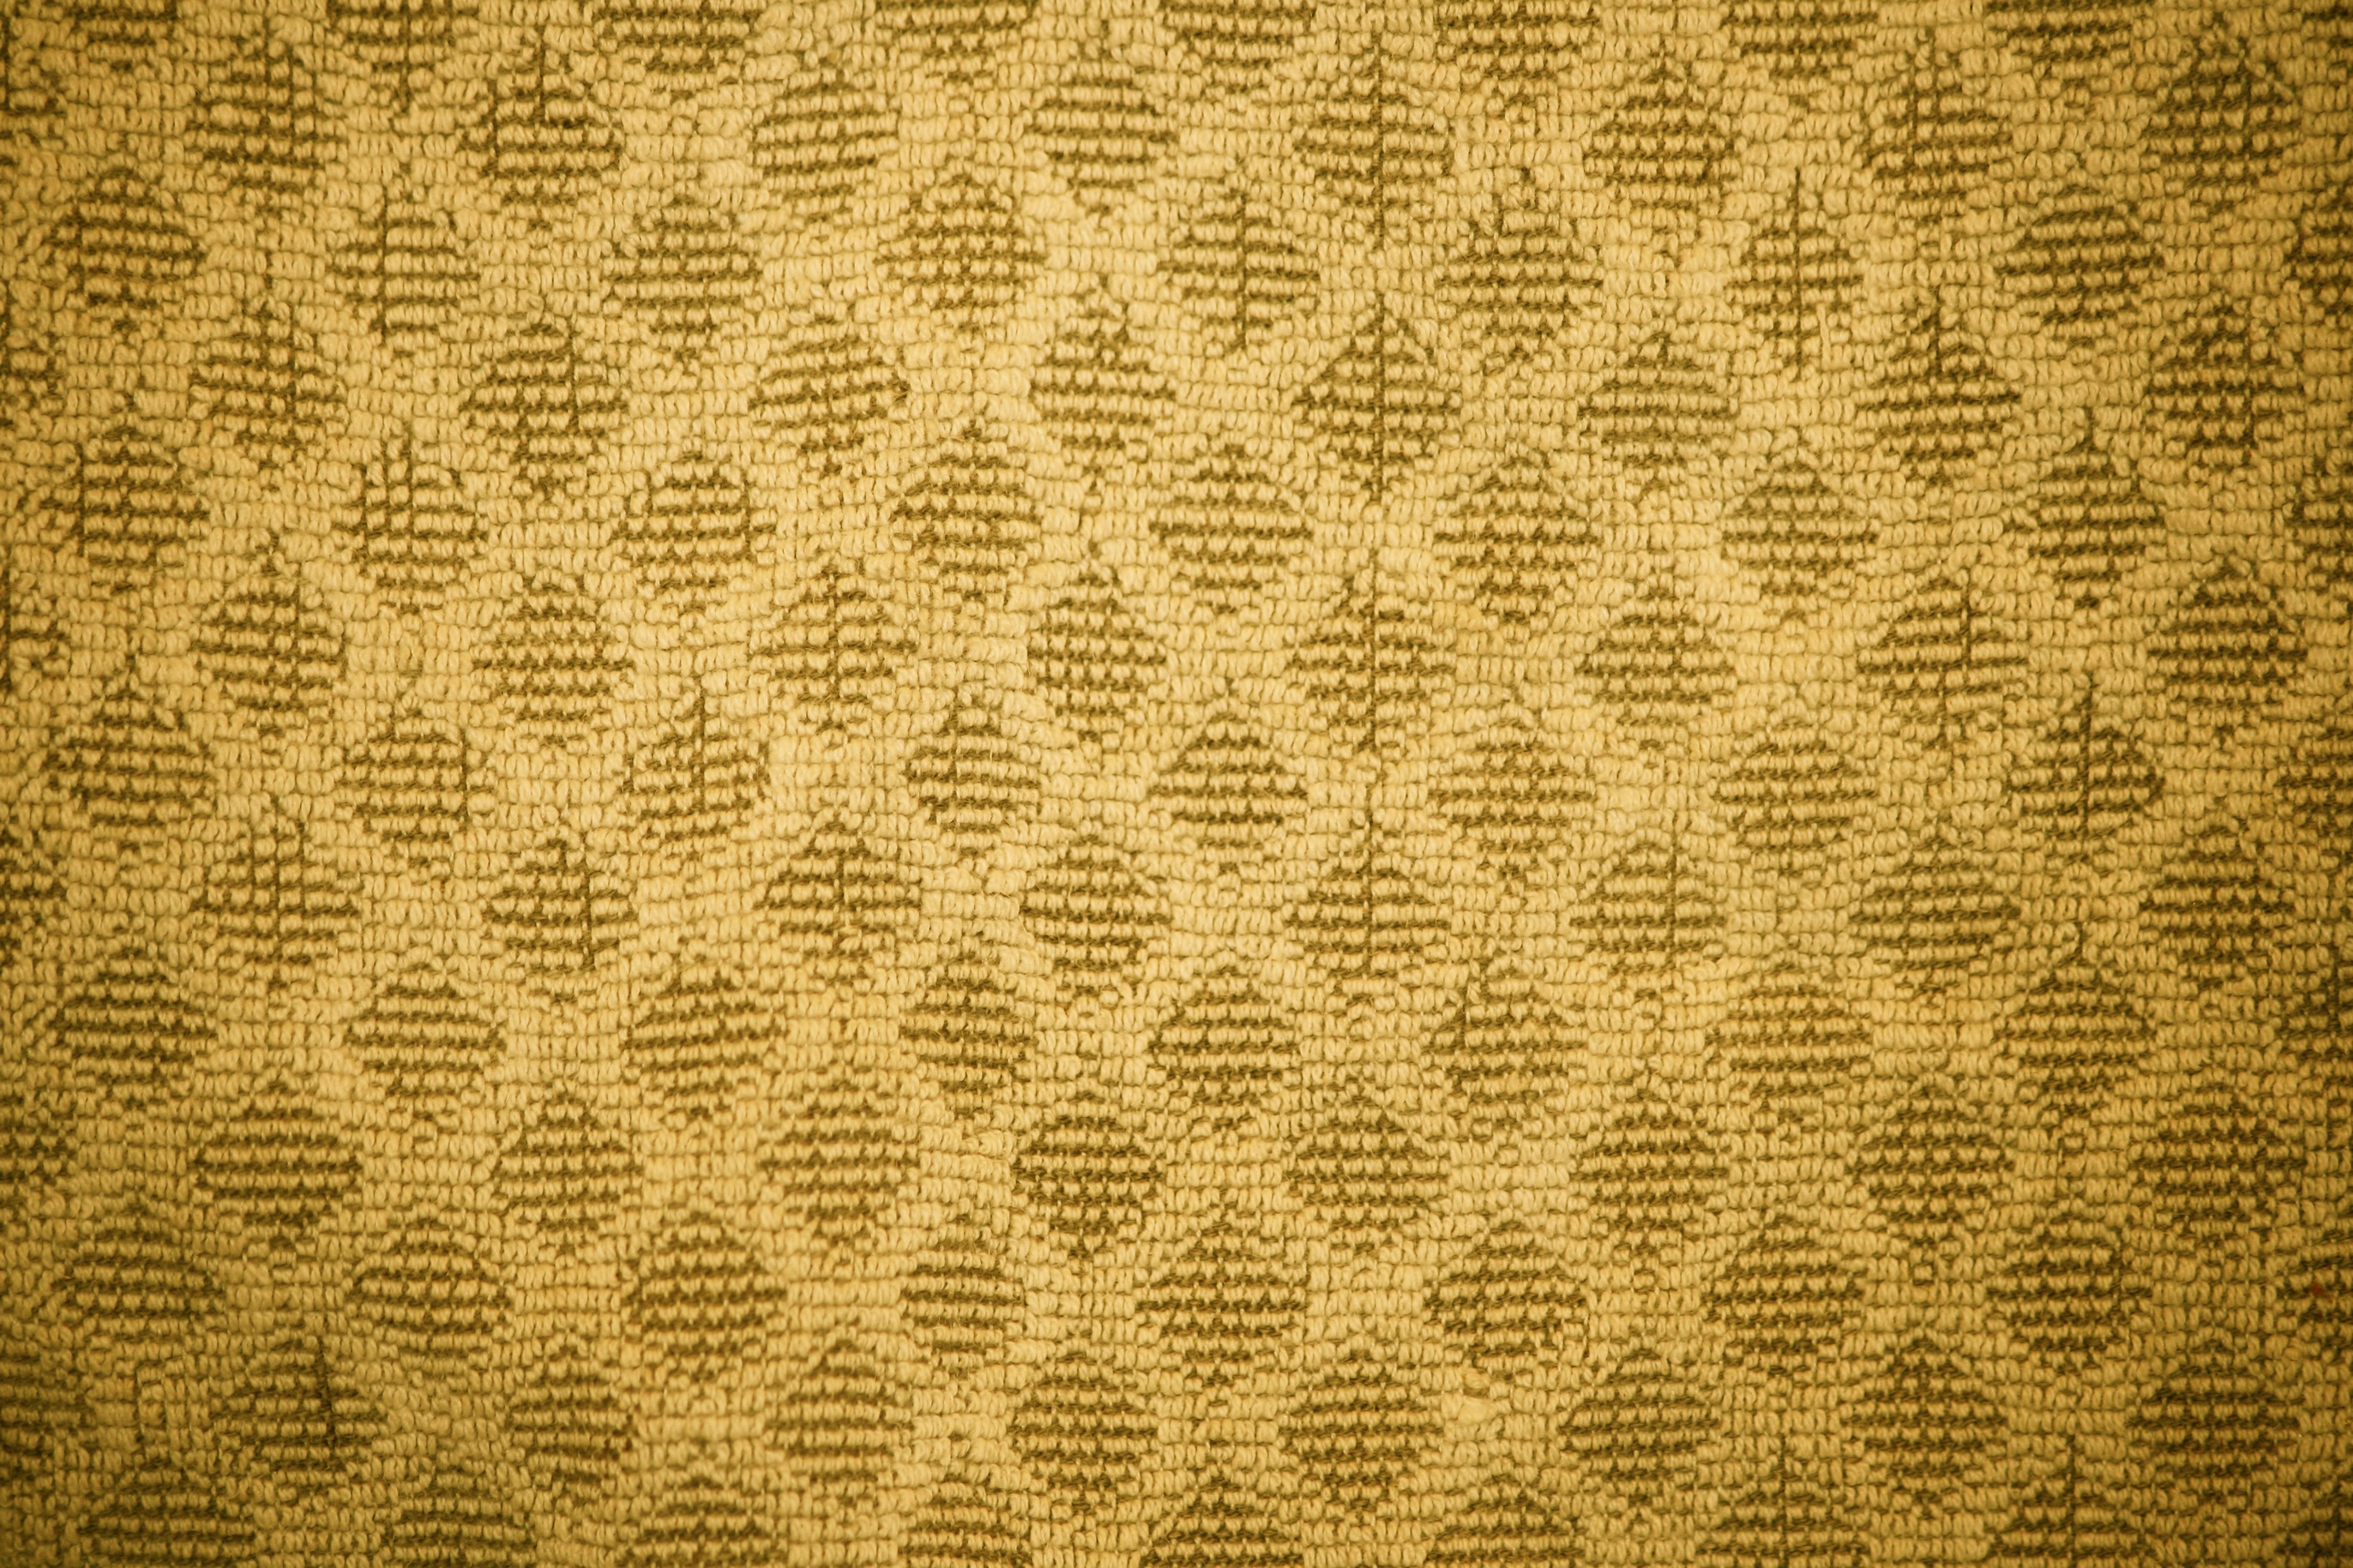 texture gold fabric cloth texture photo gold background download 2744x1829